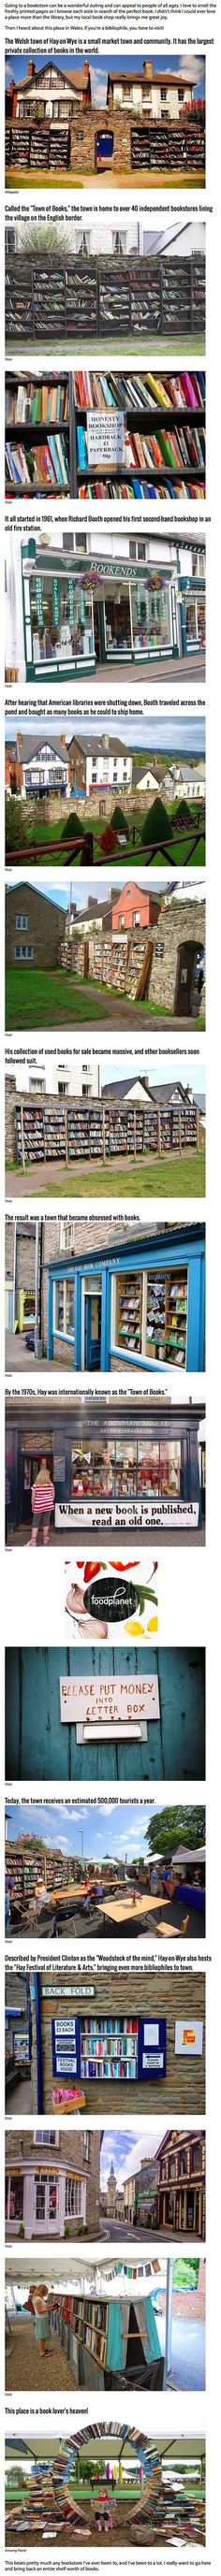 Town of Books - Hay-on-Wye. I MUST visit here!